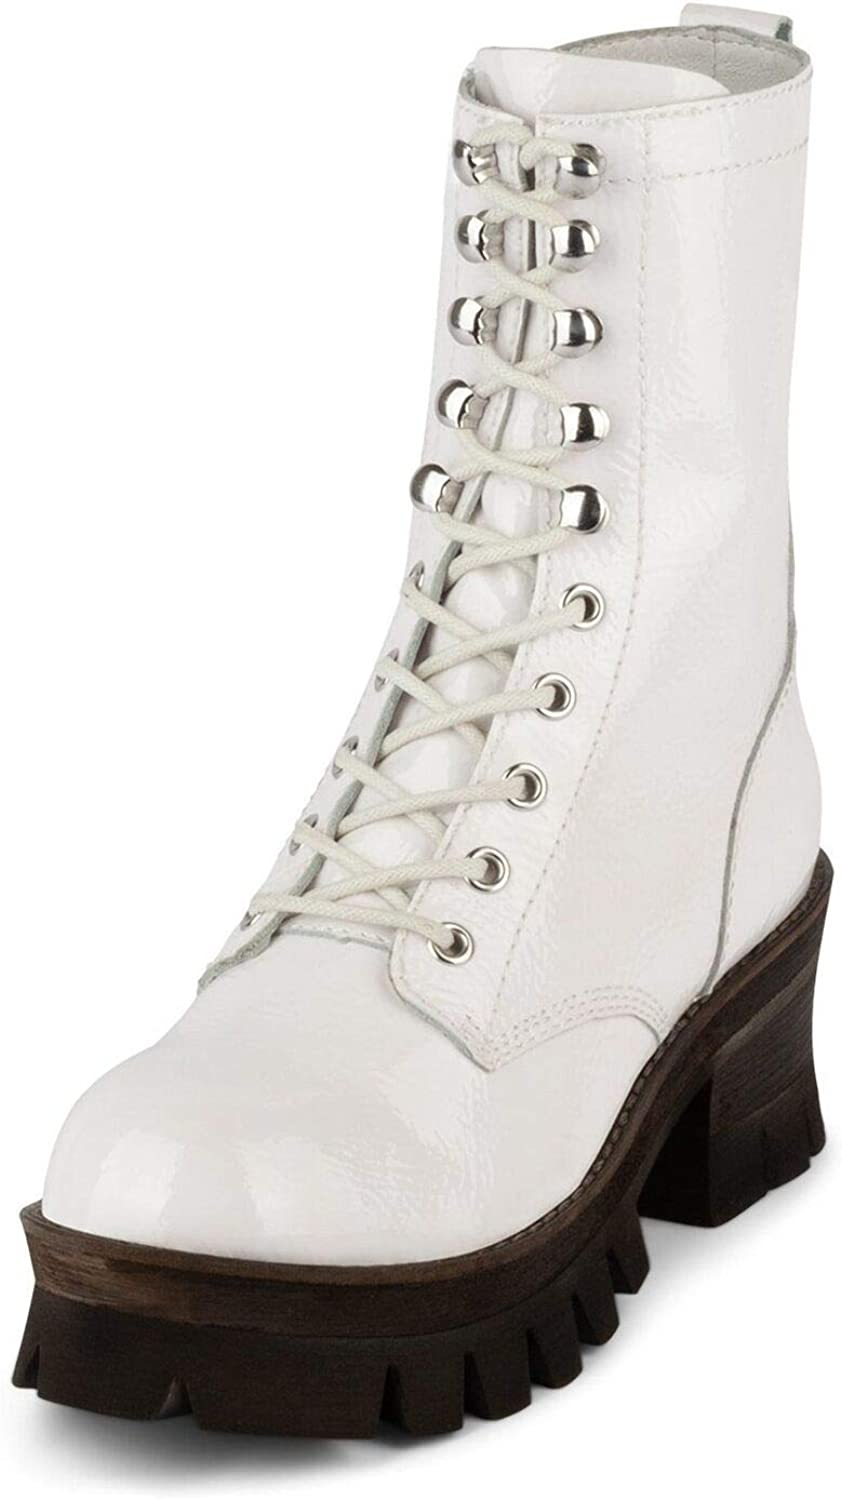 Jeffrey Campbell Sycamore Crinkle Limited time cheap sale 25% OFF Boots White